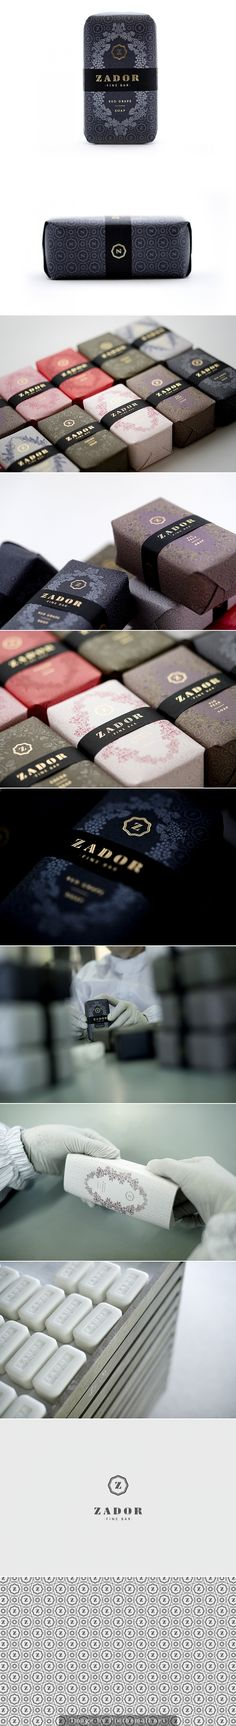 #packaging #branding #identity